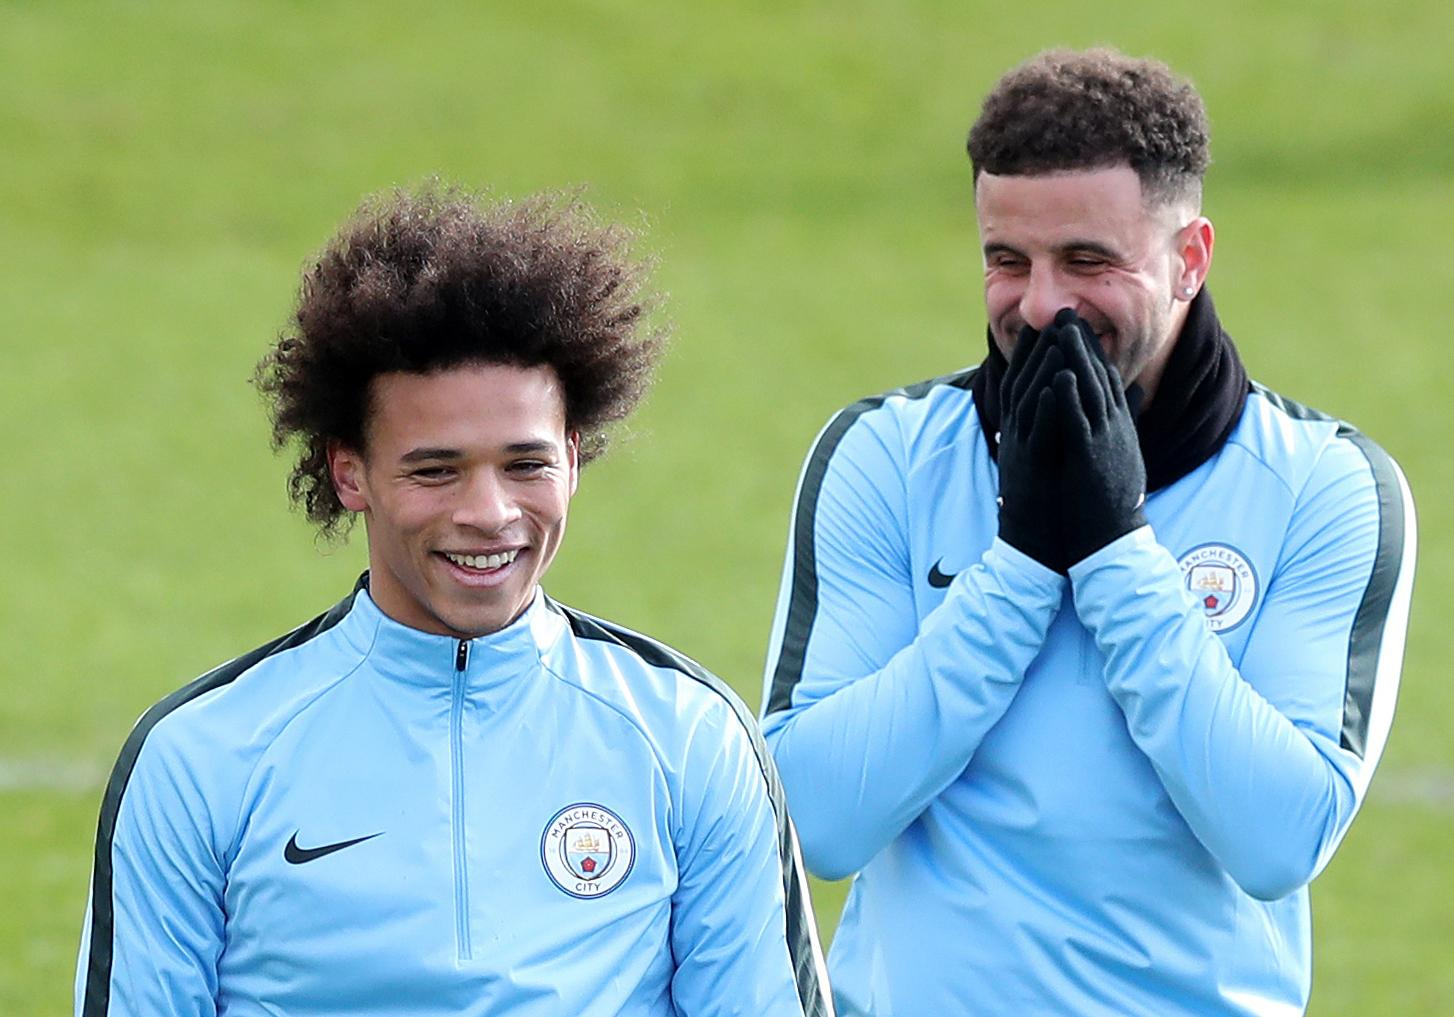 Sane showed his team-mate some love as well